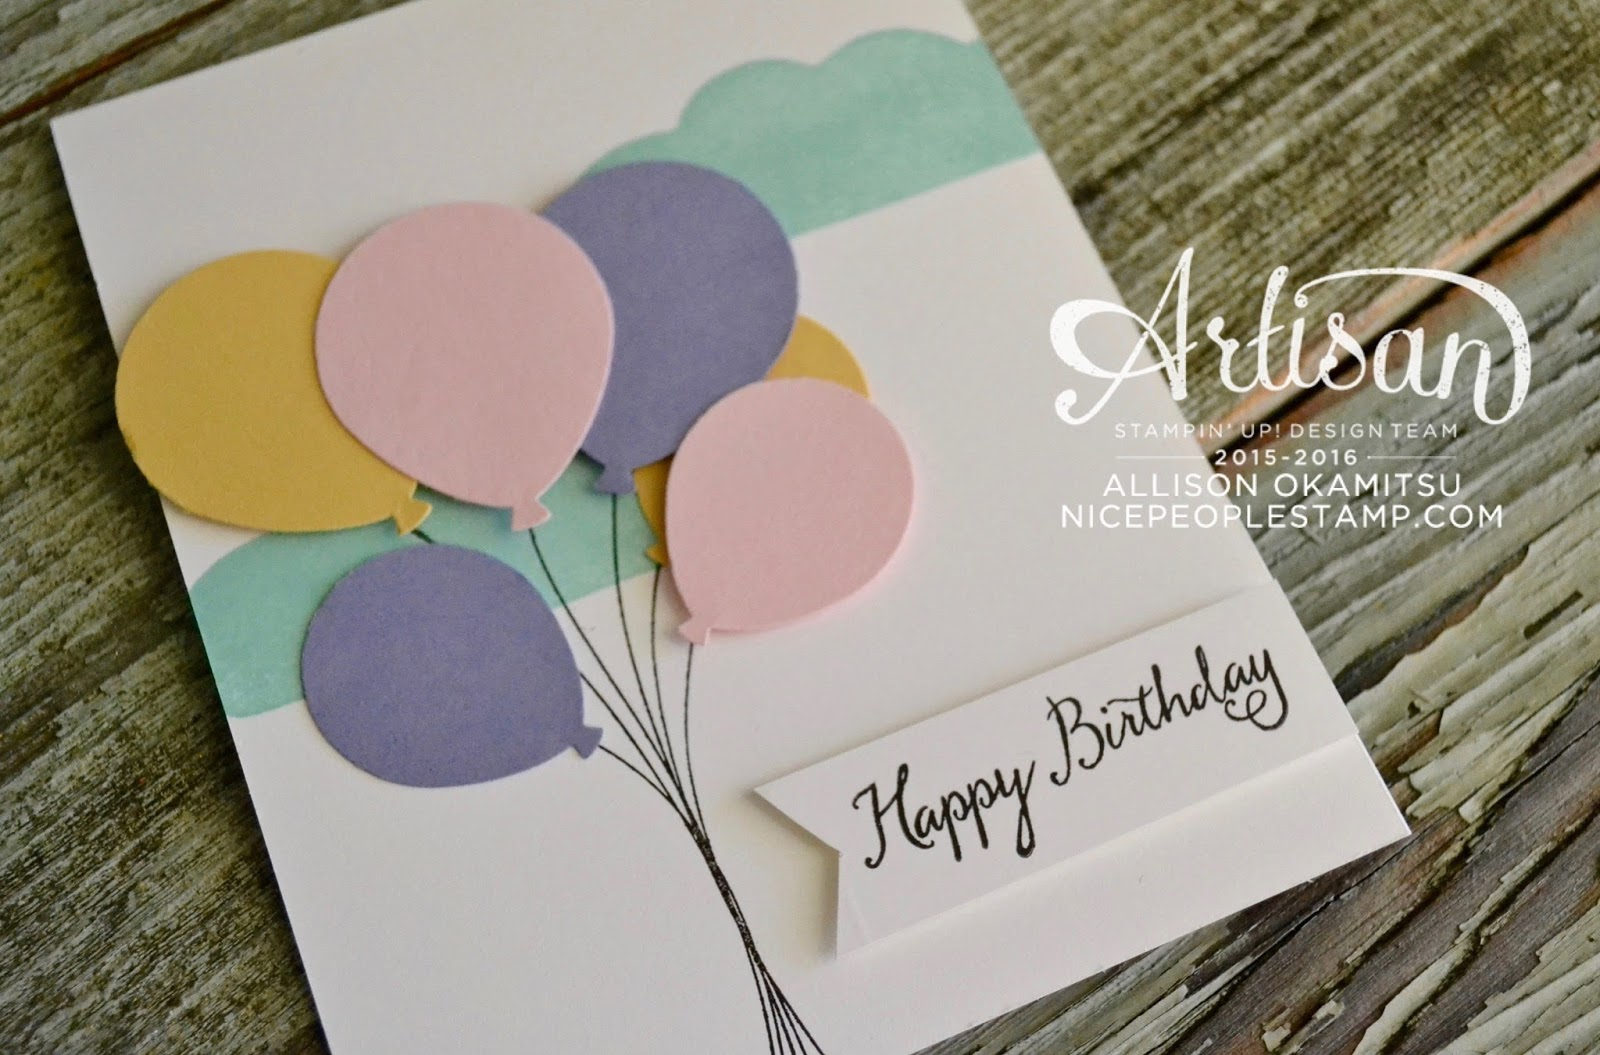 nice people STAMP Balloon Celebration Birthday Card – I Want to Make a Birthday Card